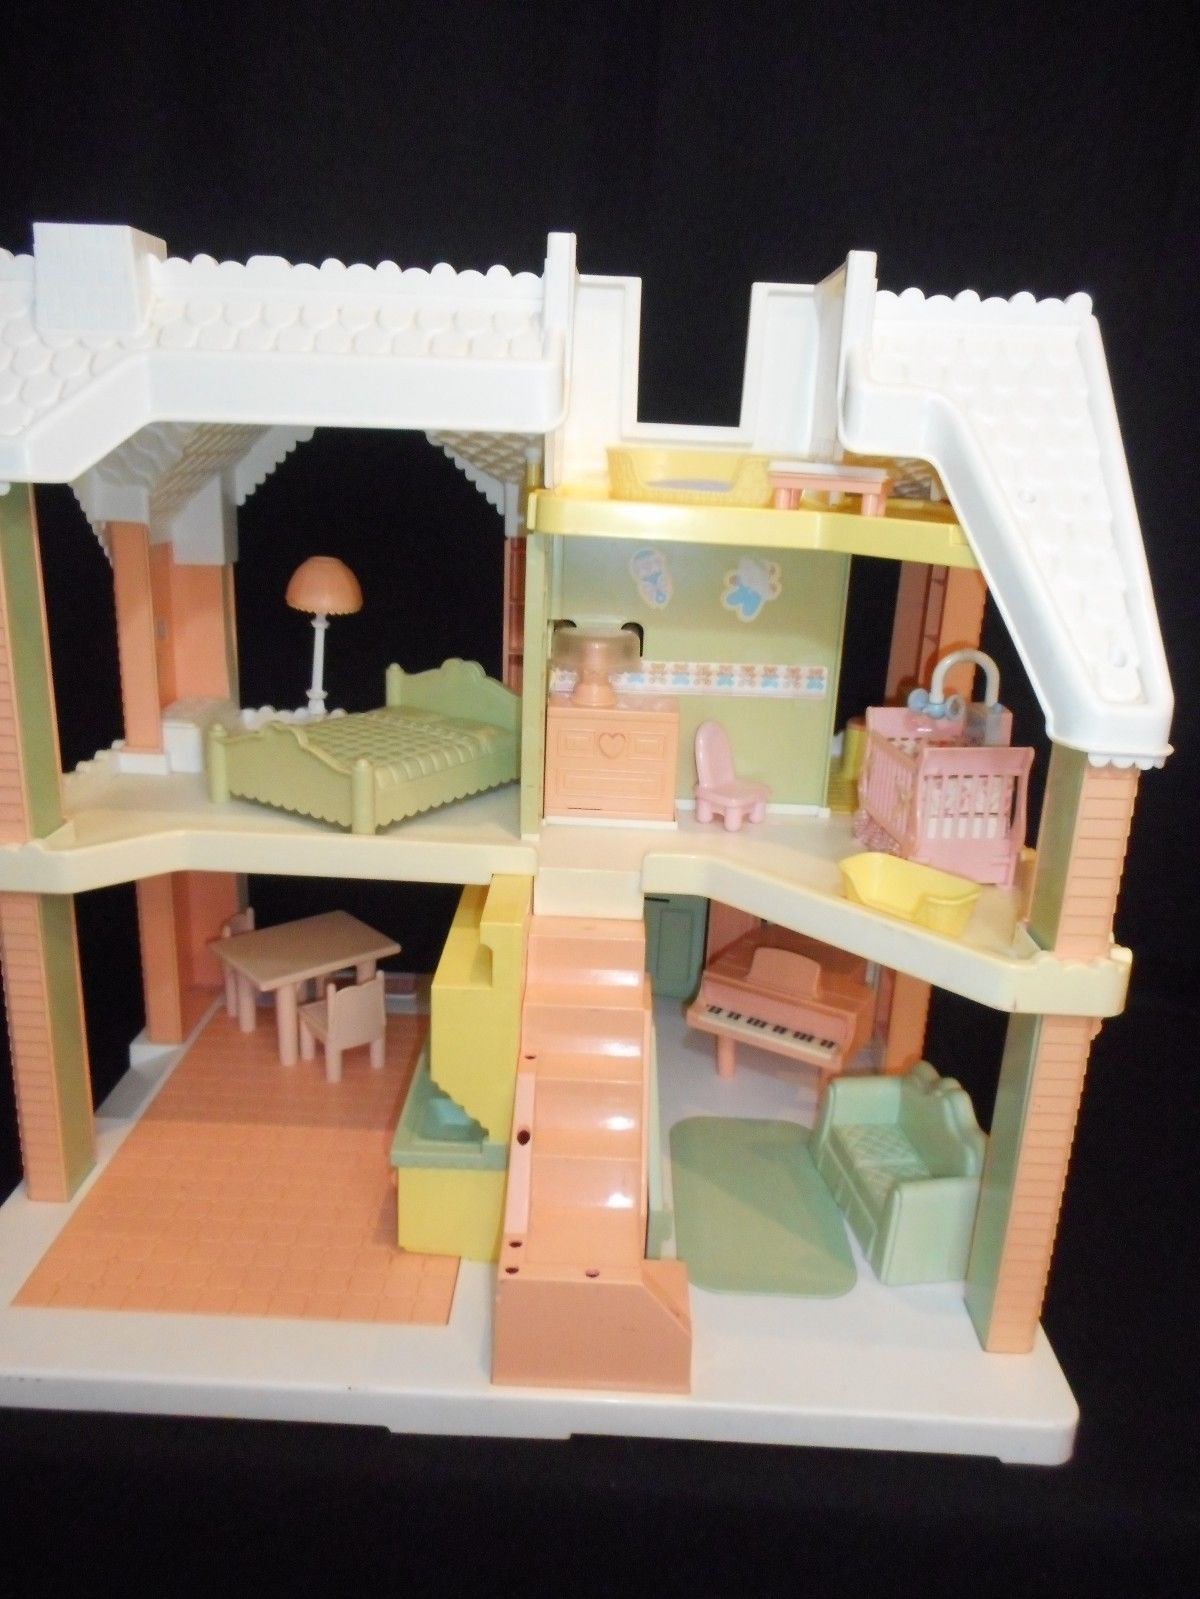 1991 Playskool VICTORIAN DOLLHOUSE pnk white with furniture Grd Piano Couch Bed image 4